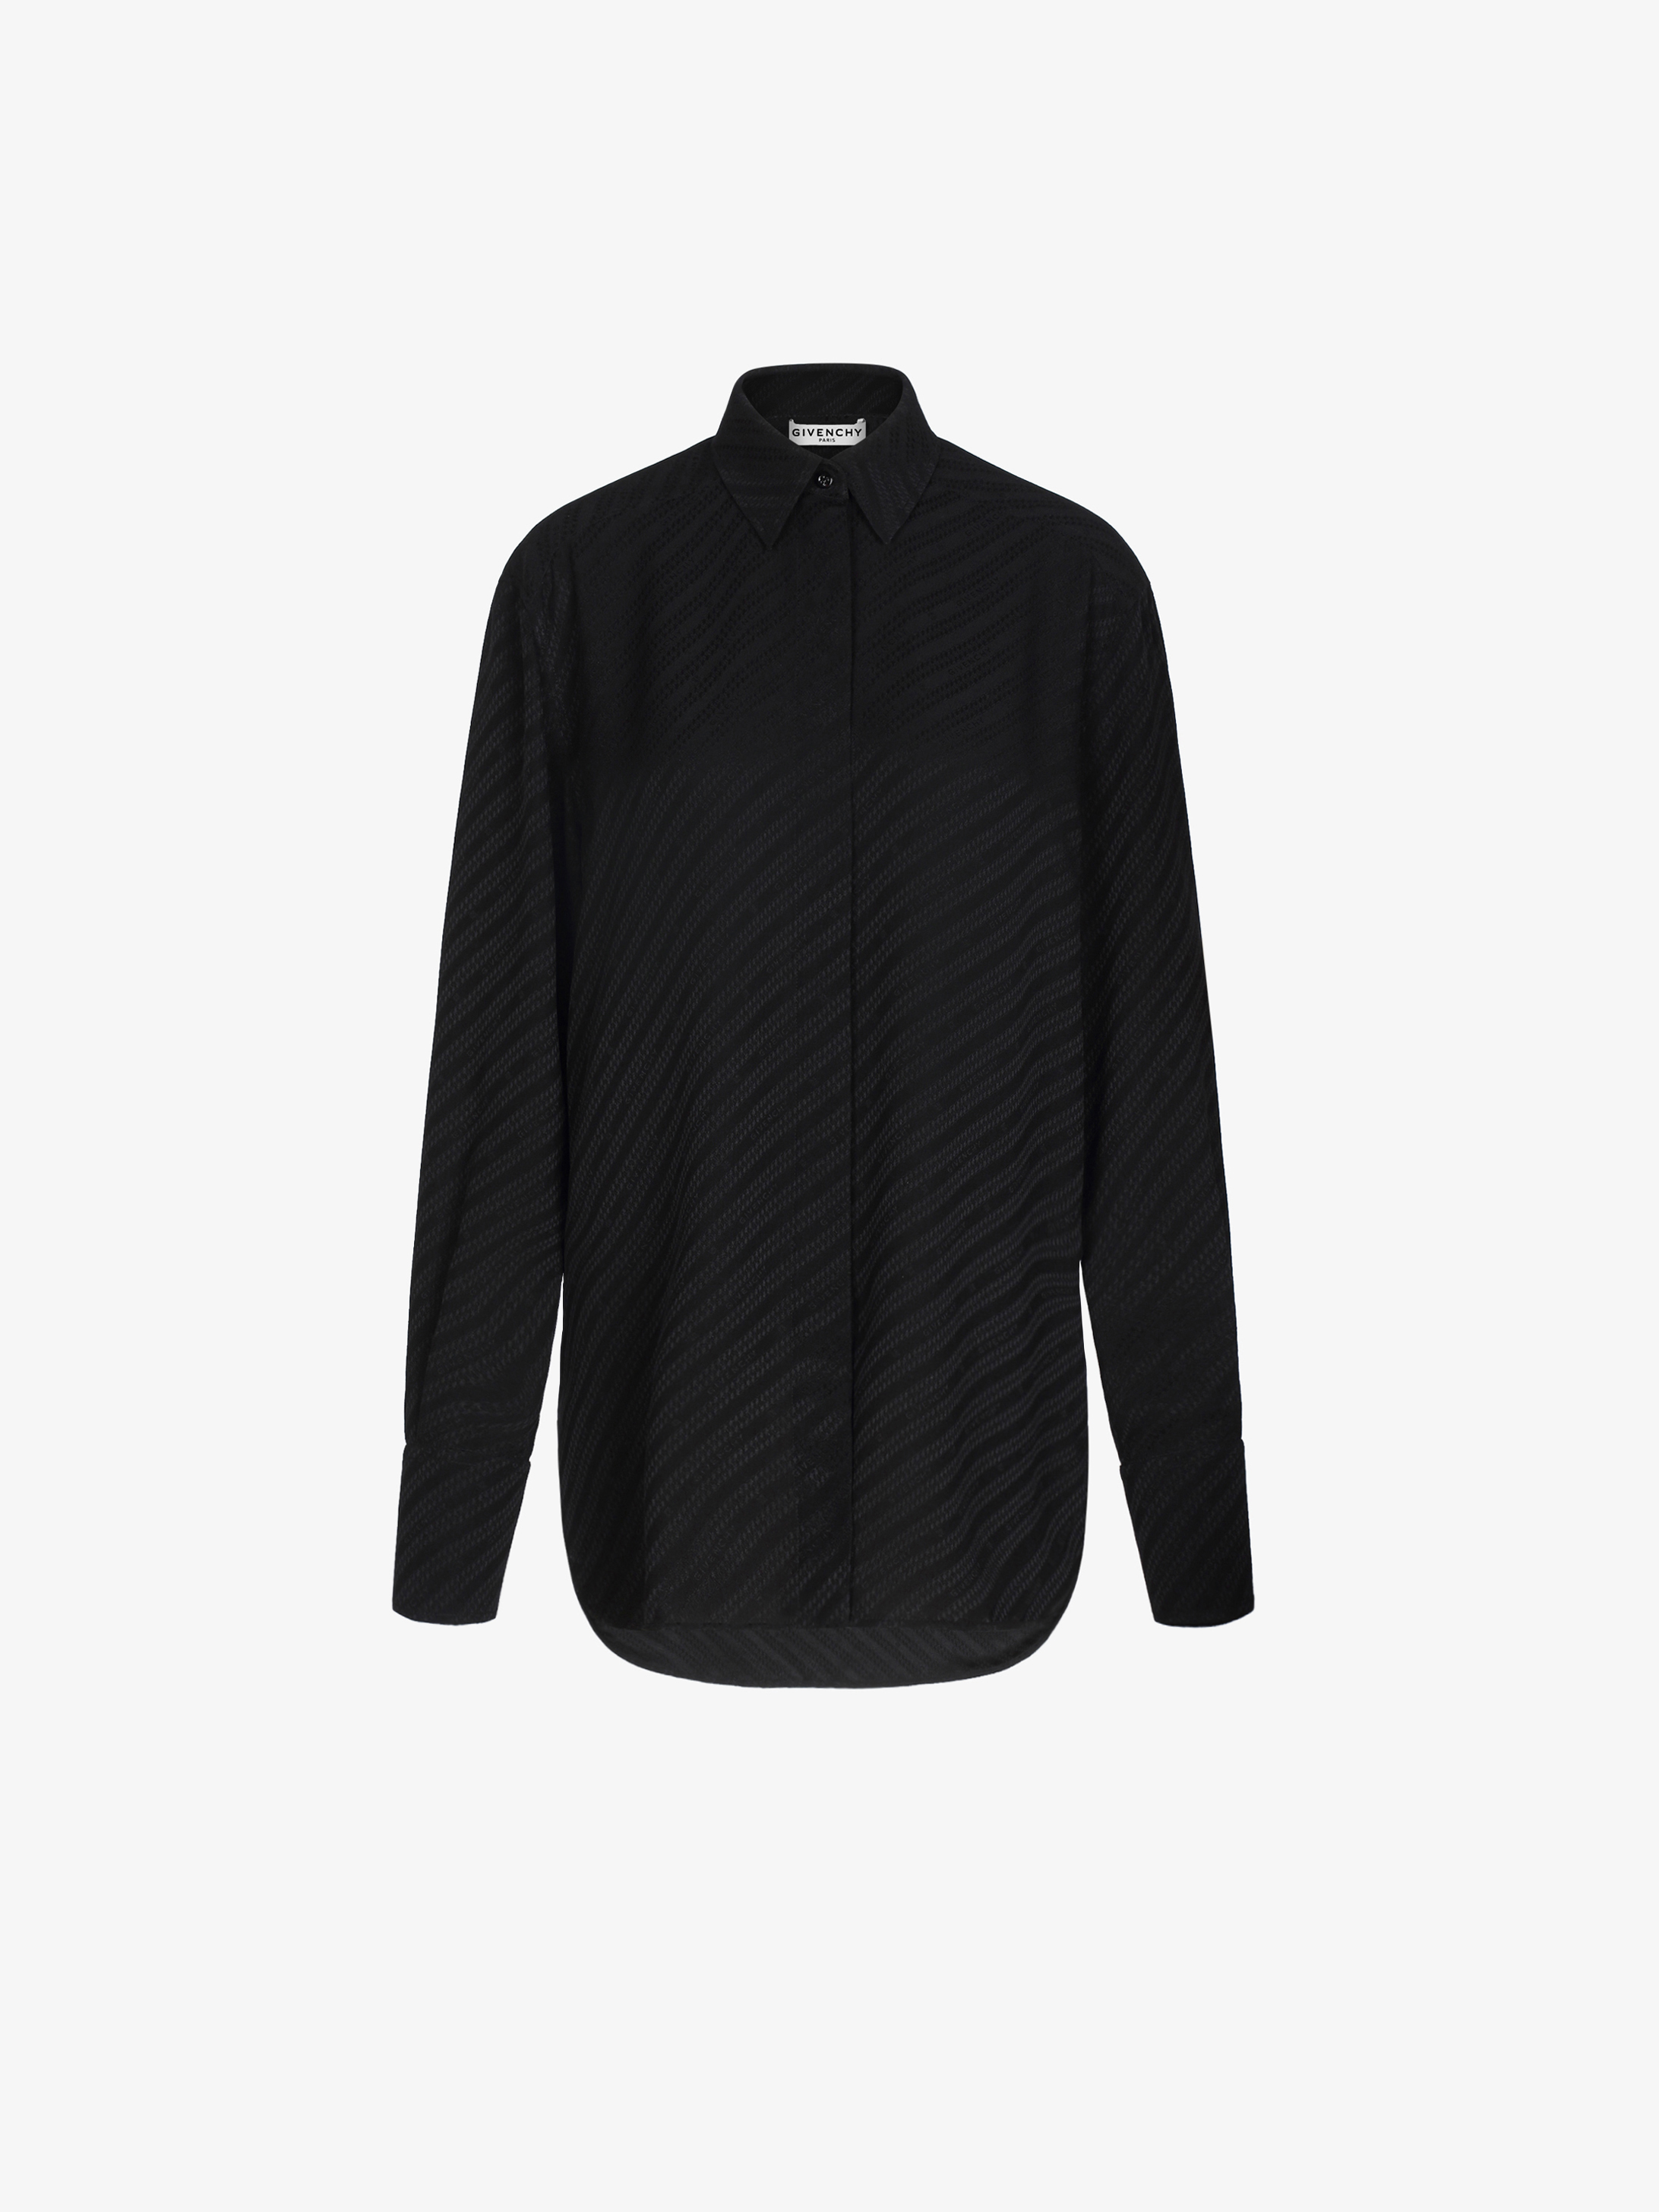 GIVENCHY chain shirt in silk jacquard